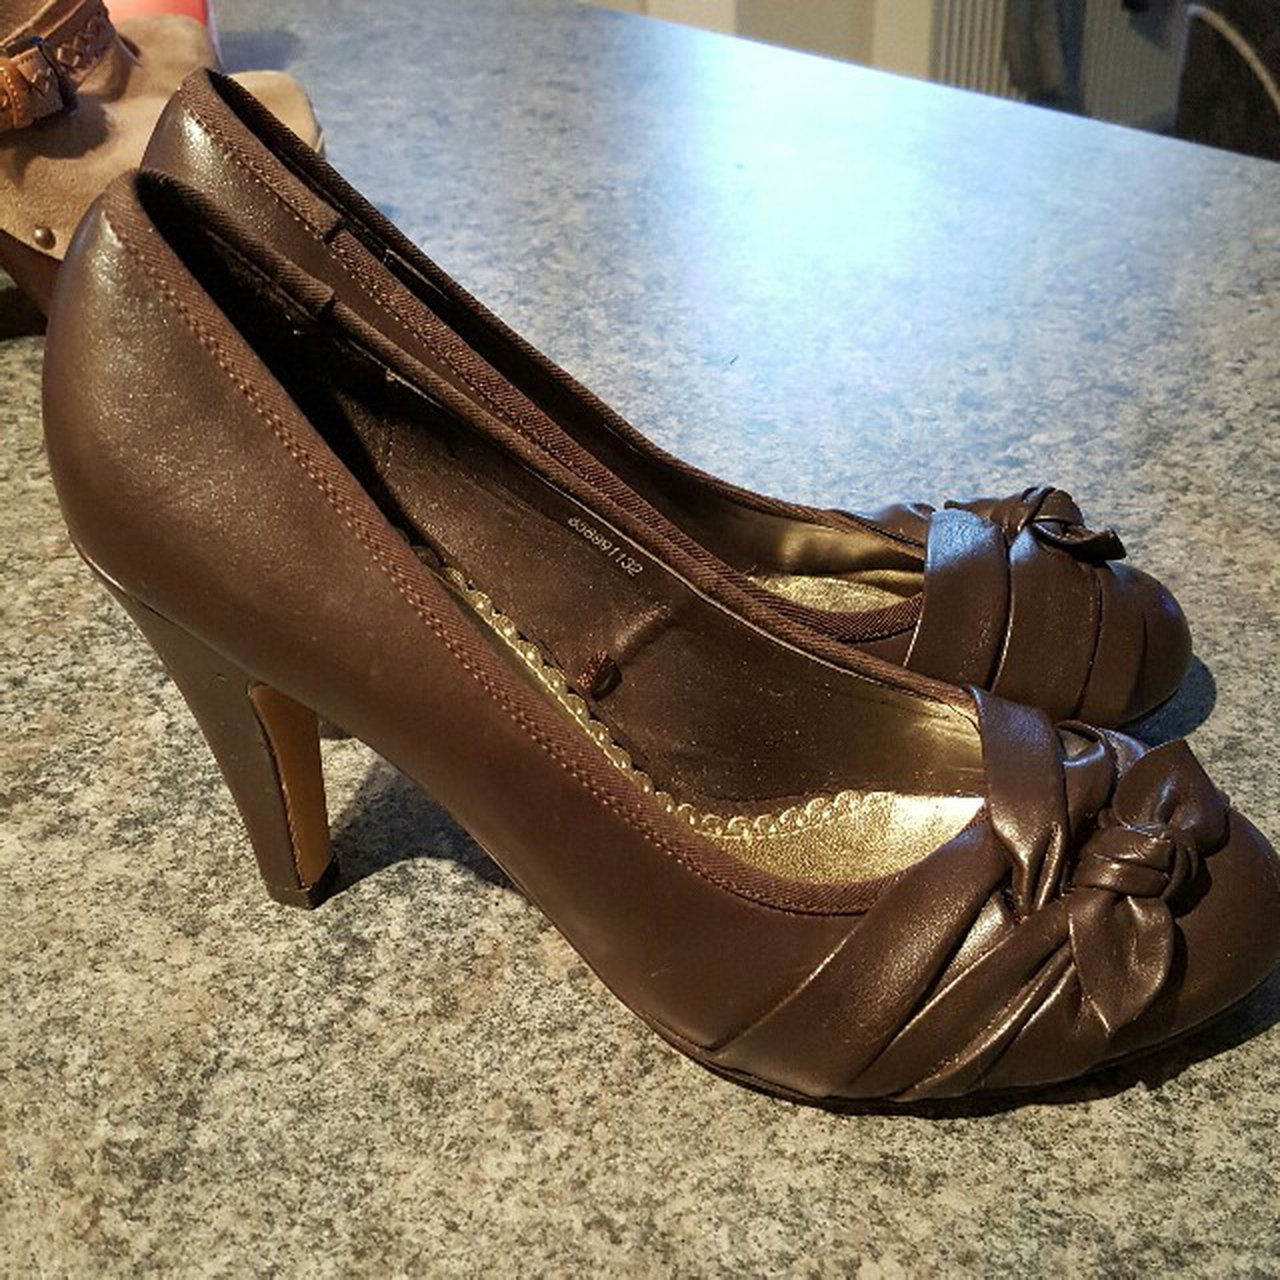 Red herring brown court shoes size 5 worn once inside! - Depop 5a7bd56b4